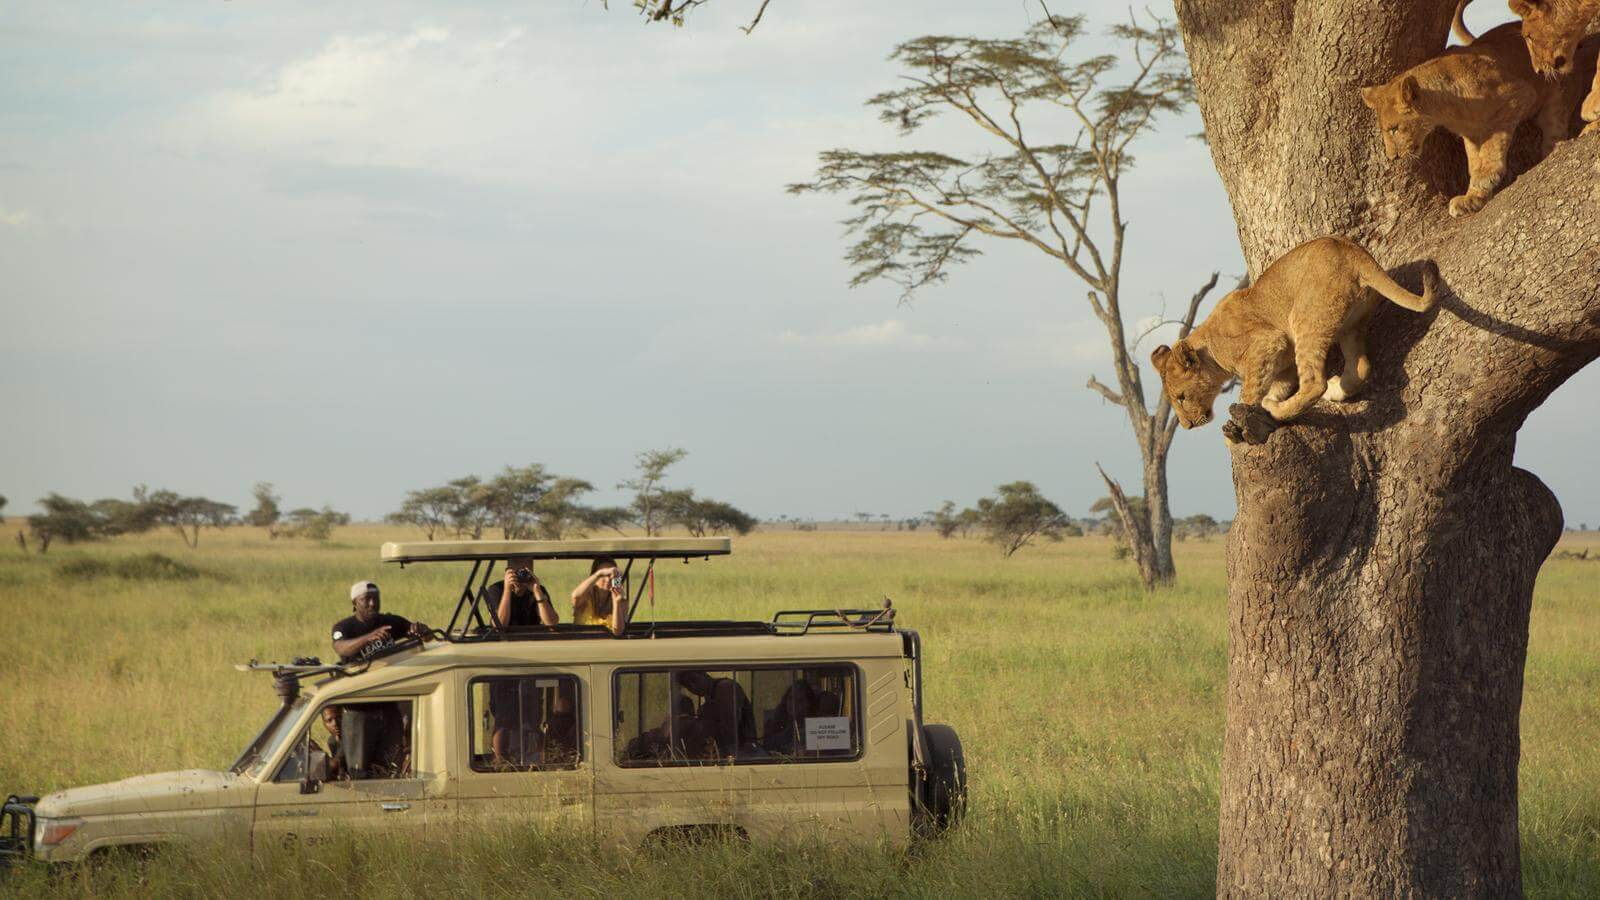 Bucket List of 10 Interesting Things to Do On a Safari in Tanzania